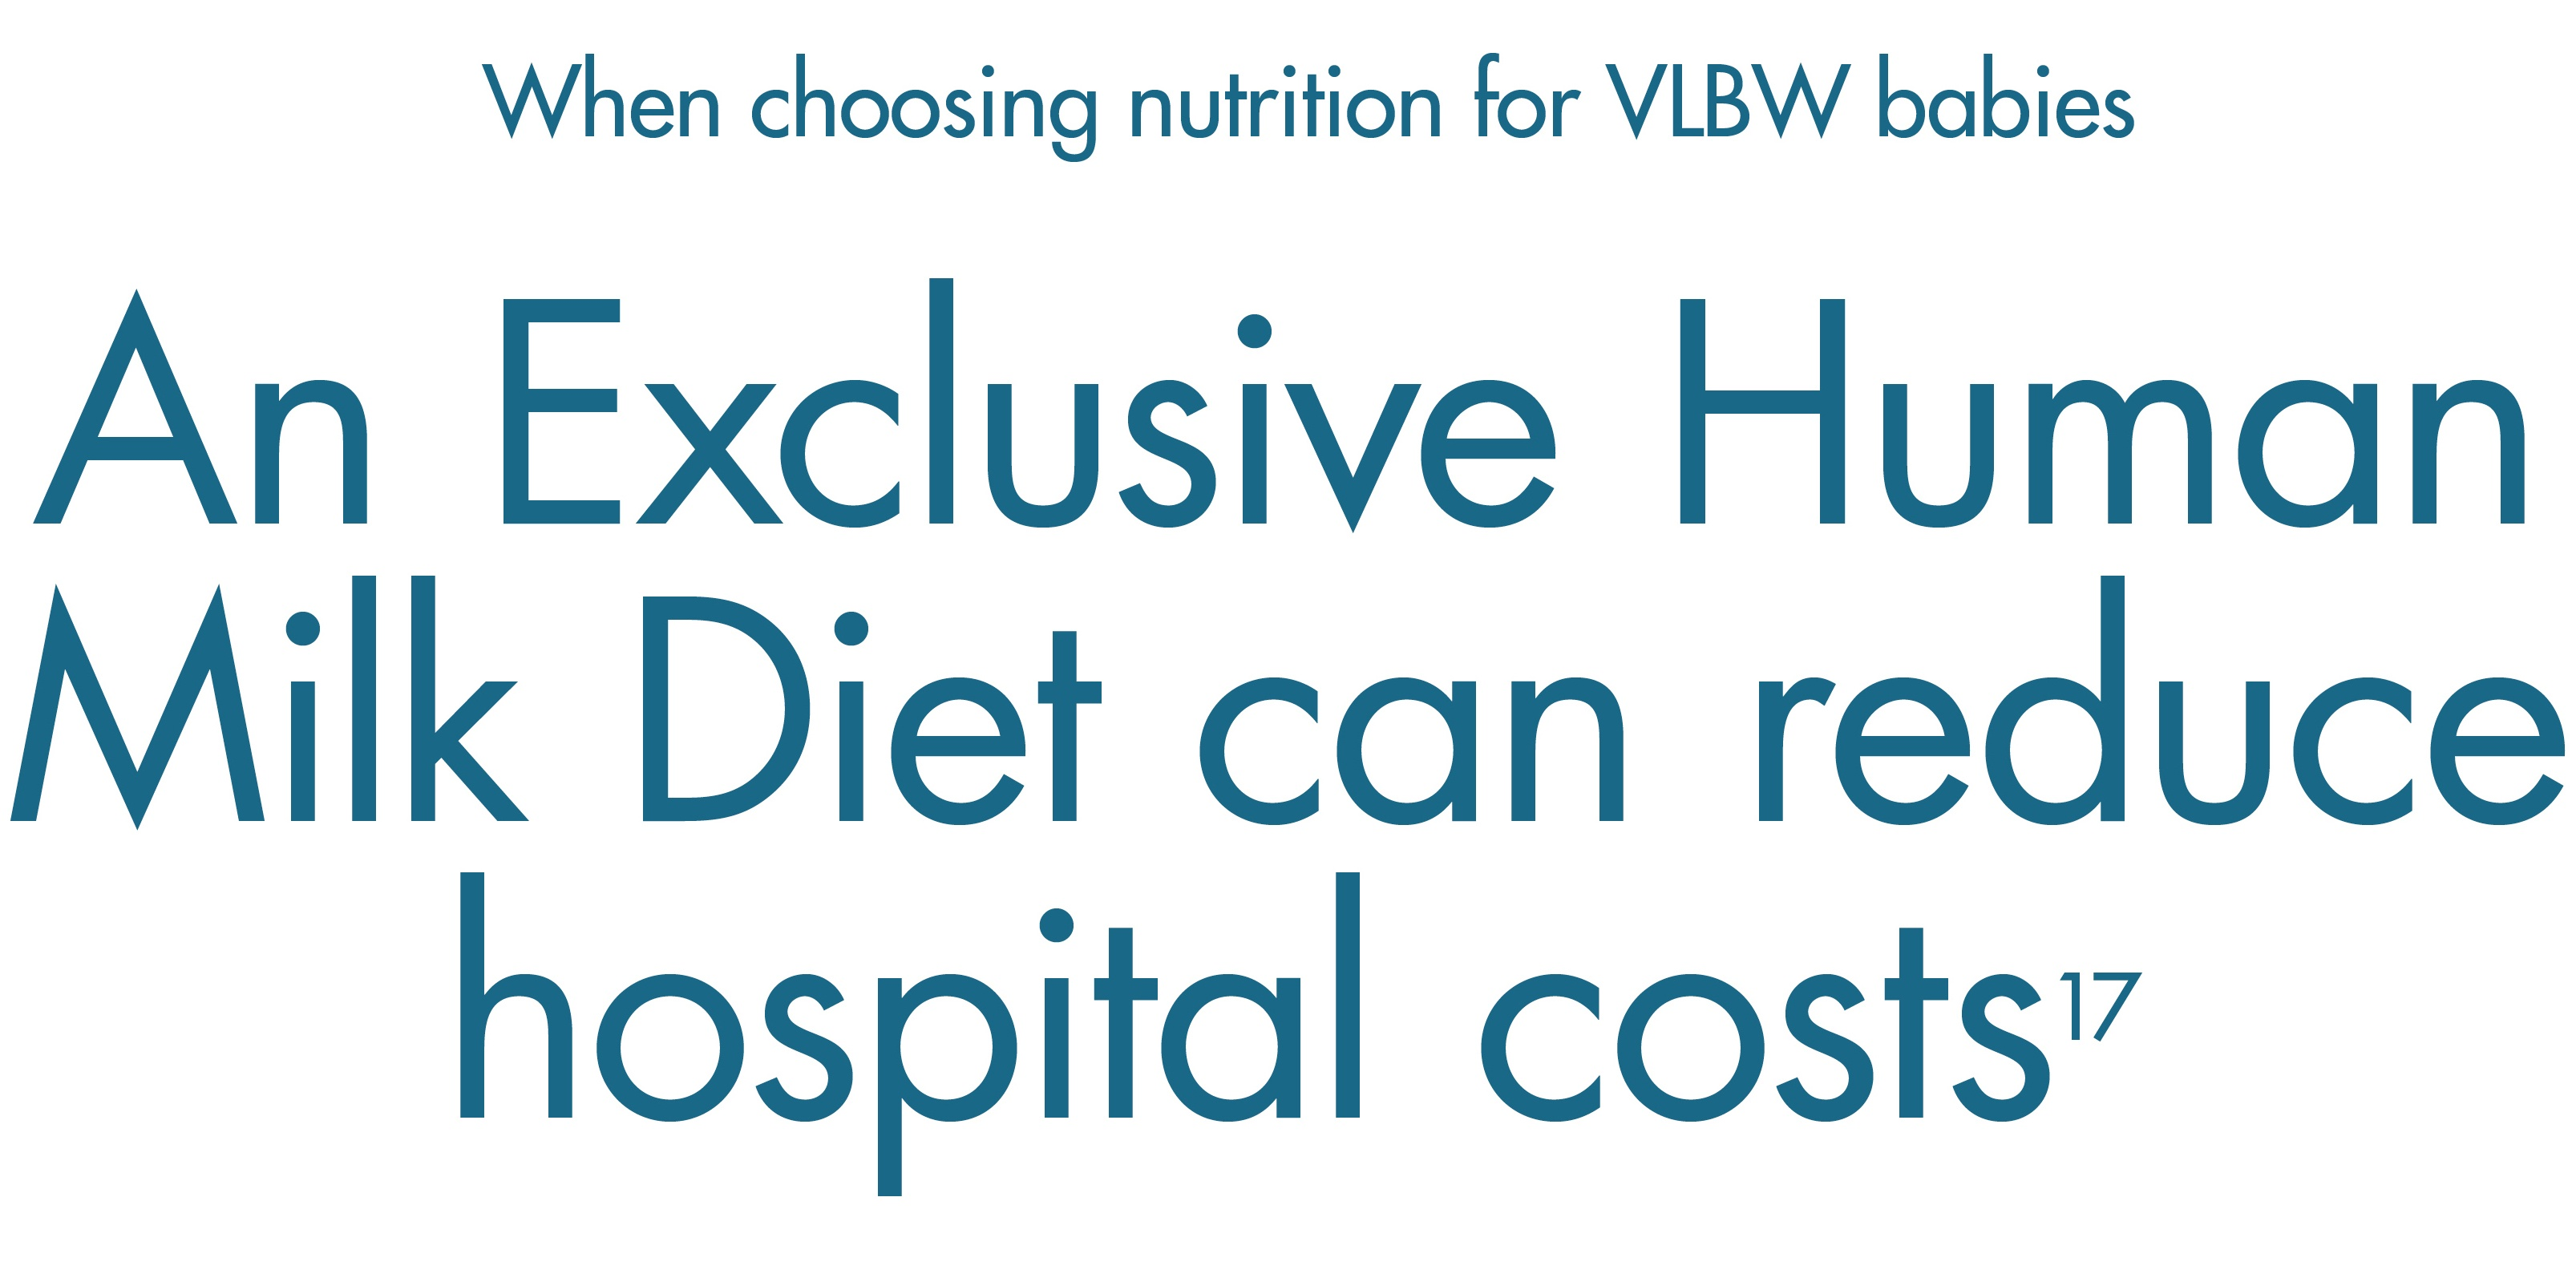 An exclusive human milk diet, with Prolacta, can reduce hospital costs for VLBW infants